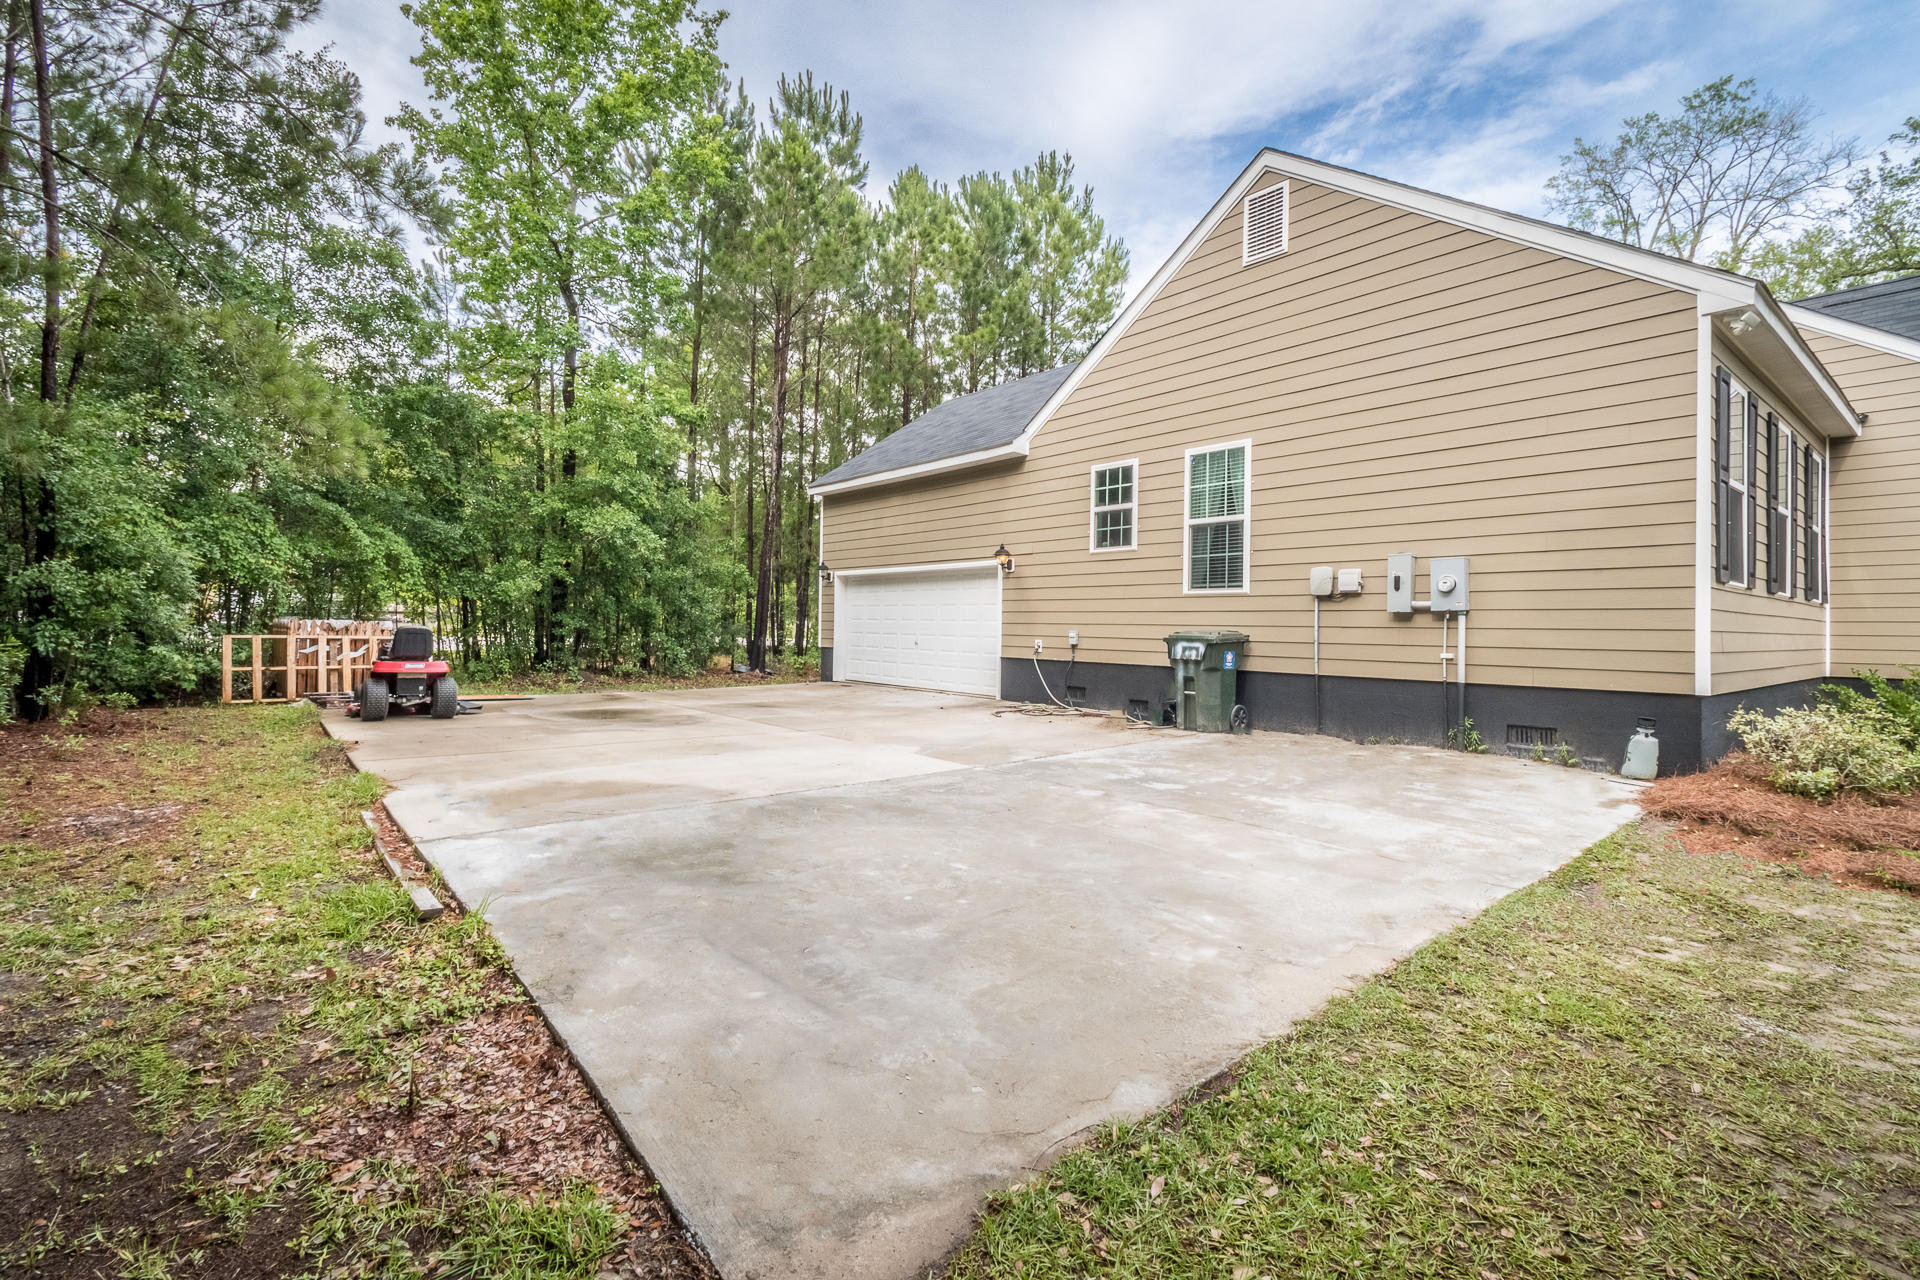 Cainhoy Landing Homes For Sale - 203 Ferry Point, Charleston, SC - 26